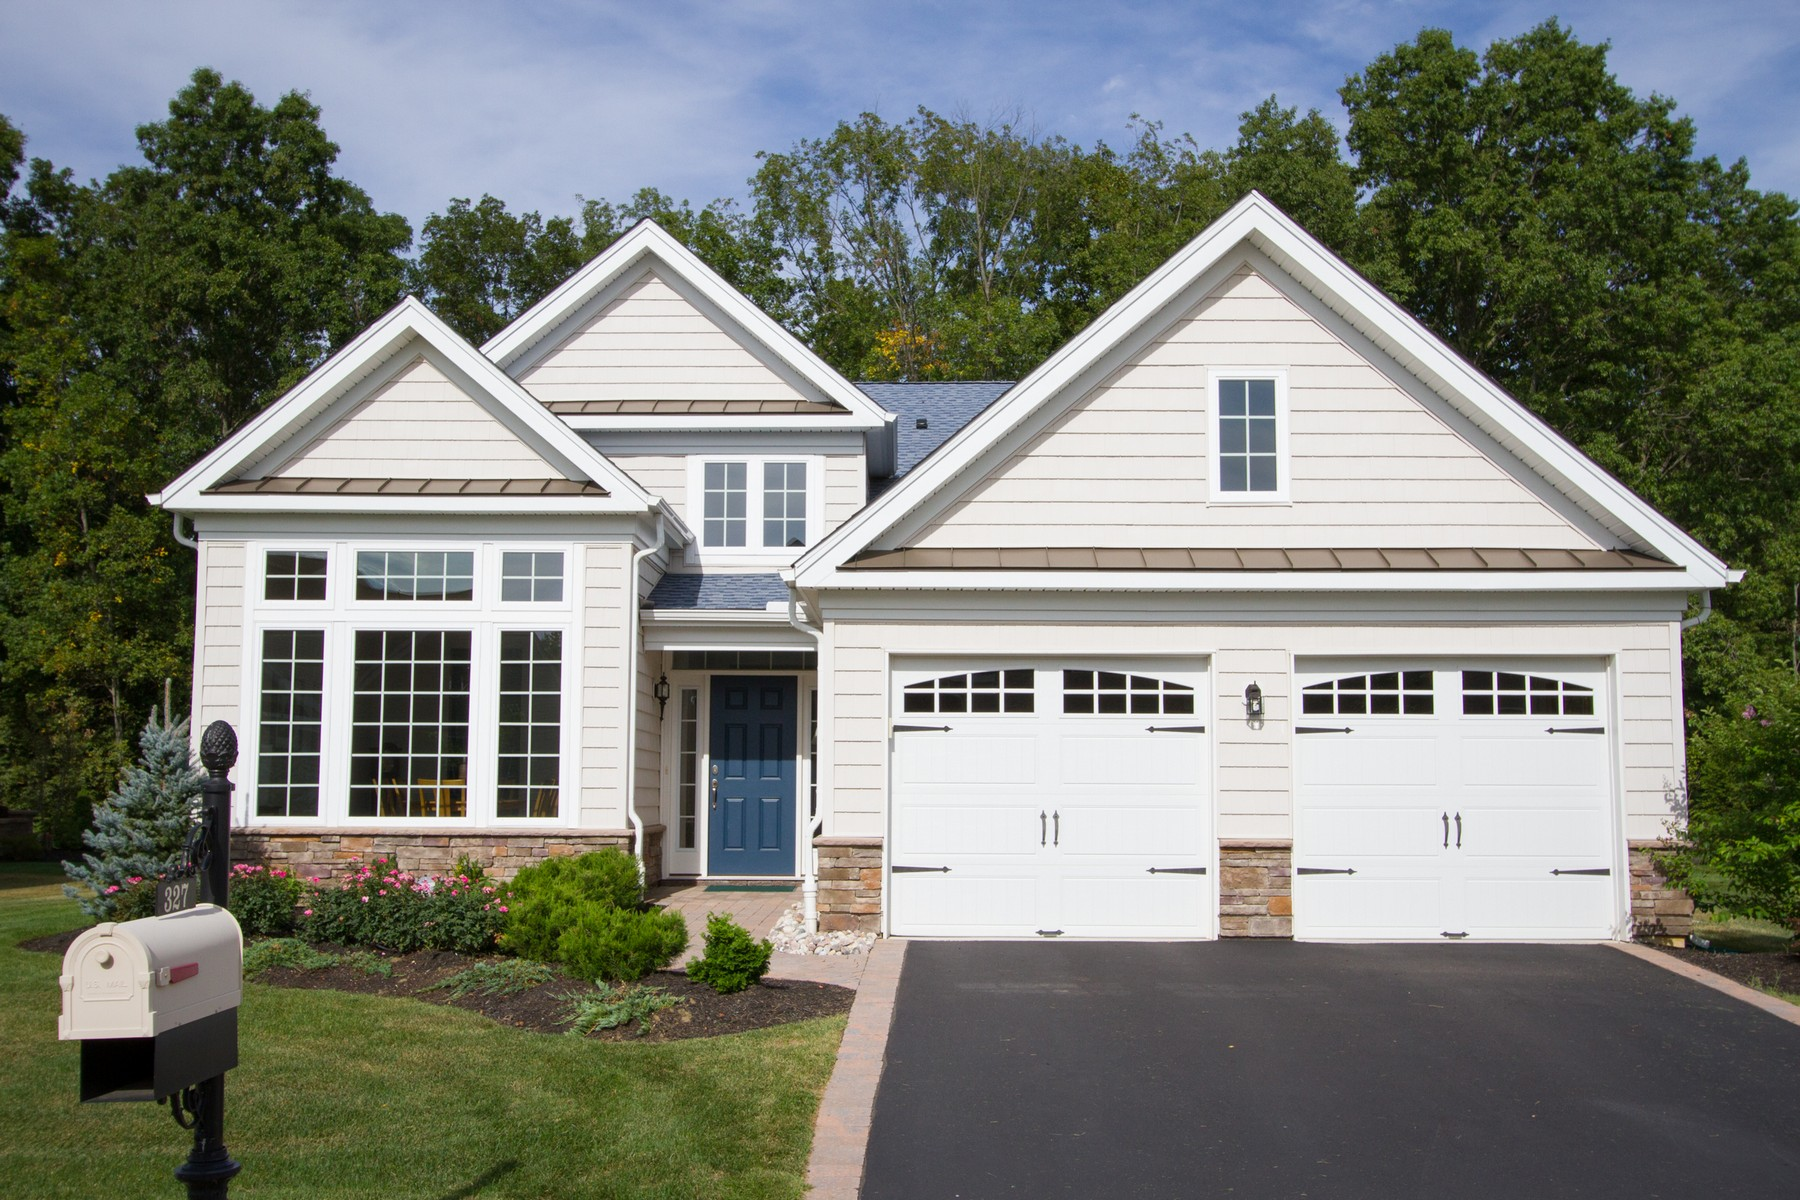 Other Residential for Sale at Designer Quality 327 Dorn Dr Shrewsbury, New Jersey 07702 United States